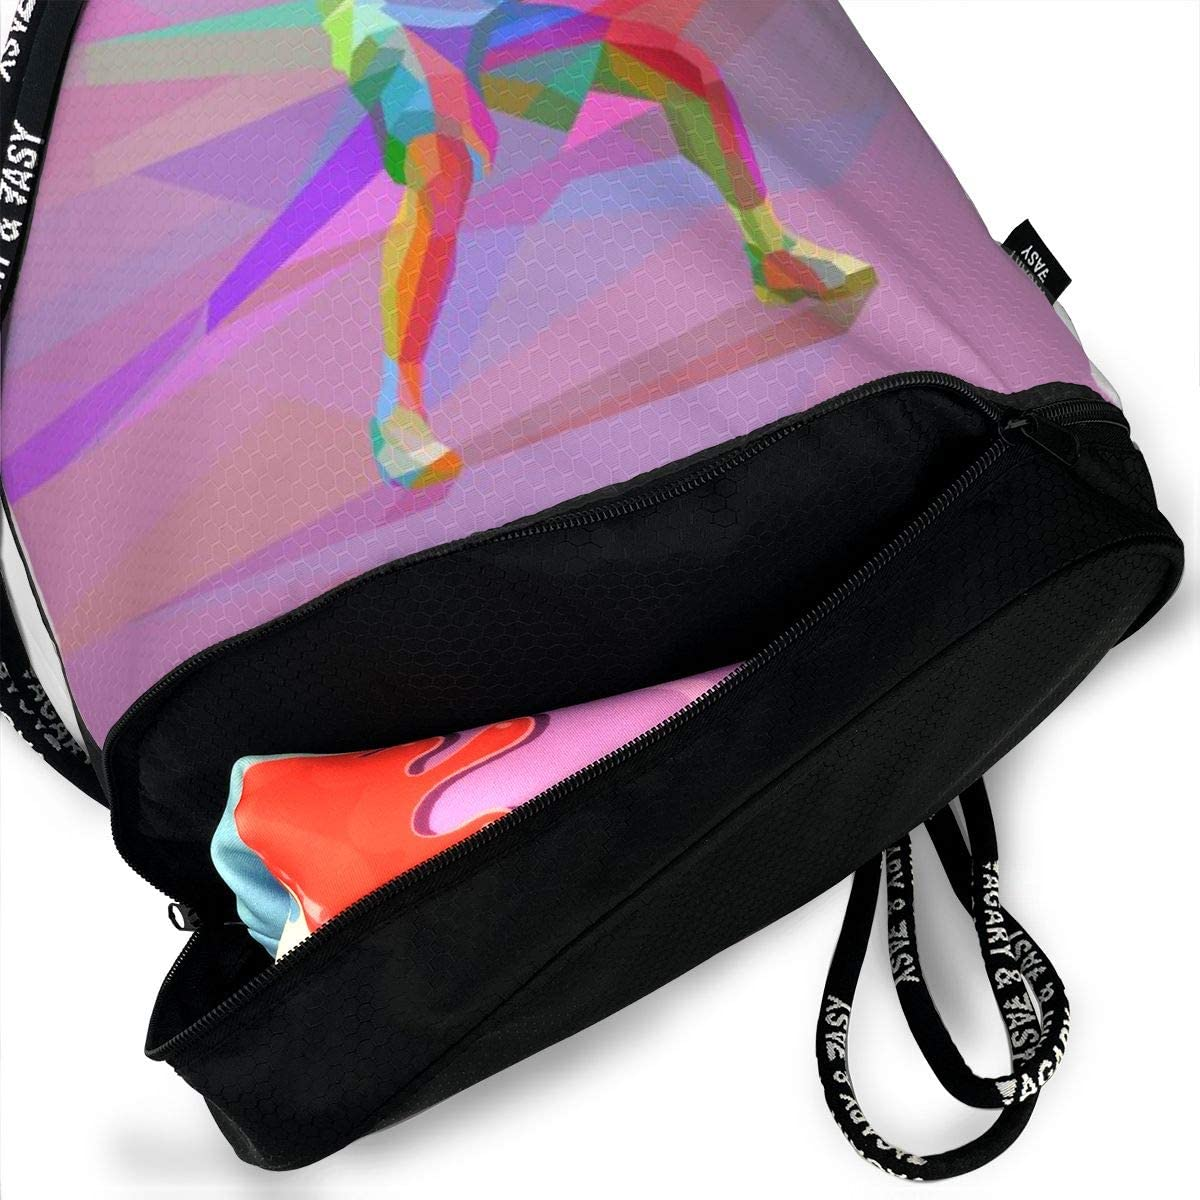 Kji Gym Sack Drawstring Bag Tennis Famouse Man Printed Sackpack Sport Cinch Pack Backpack for Men Women